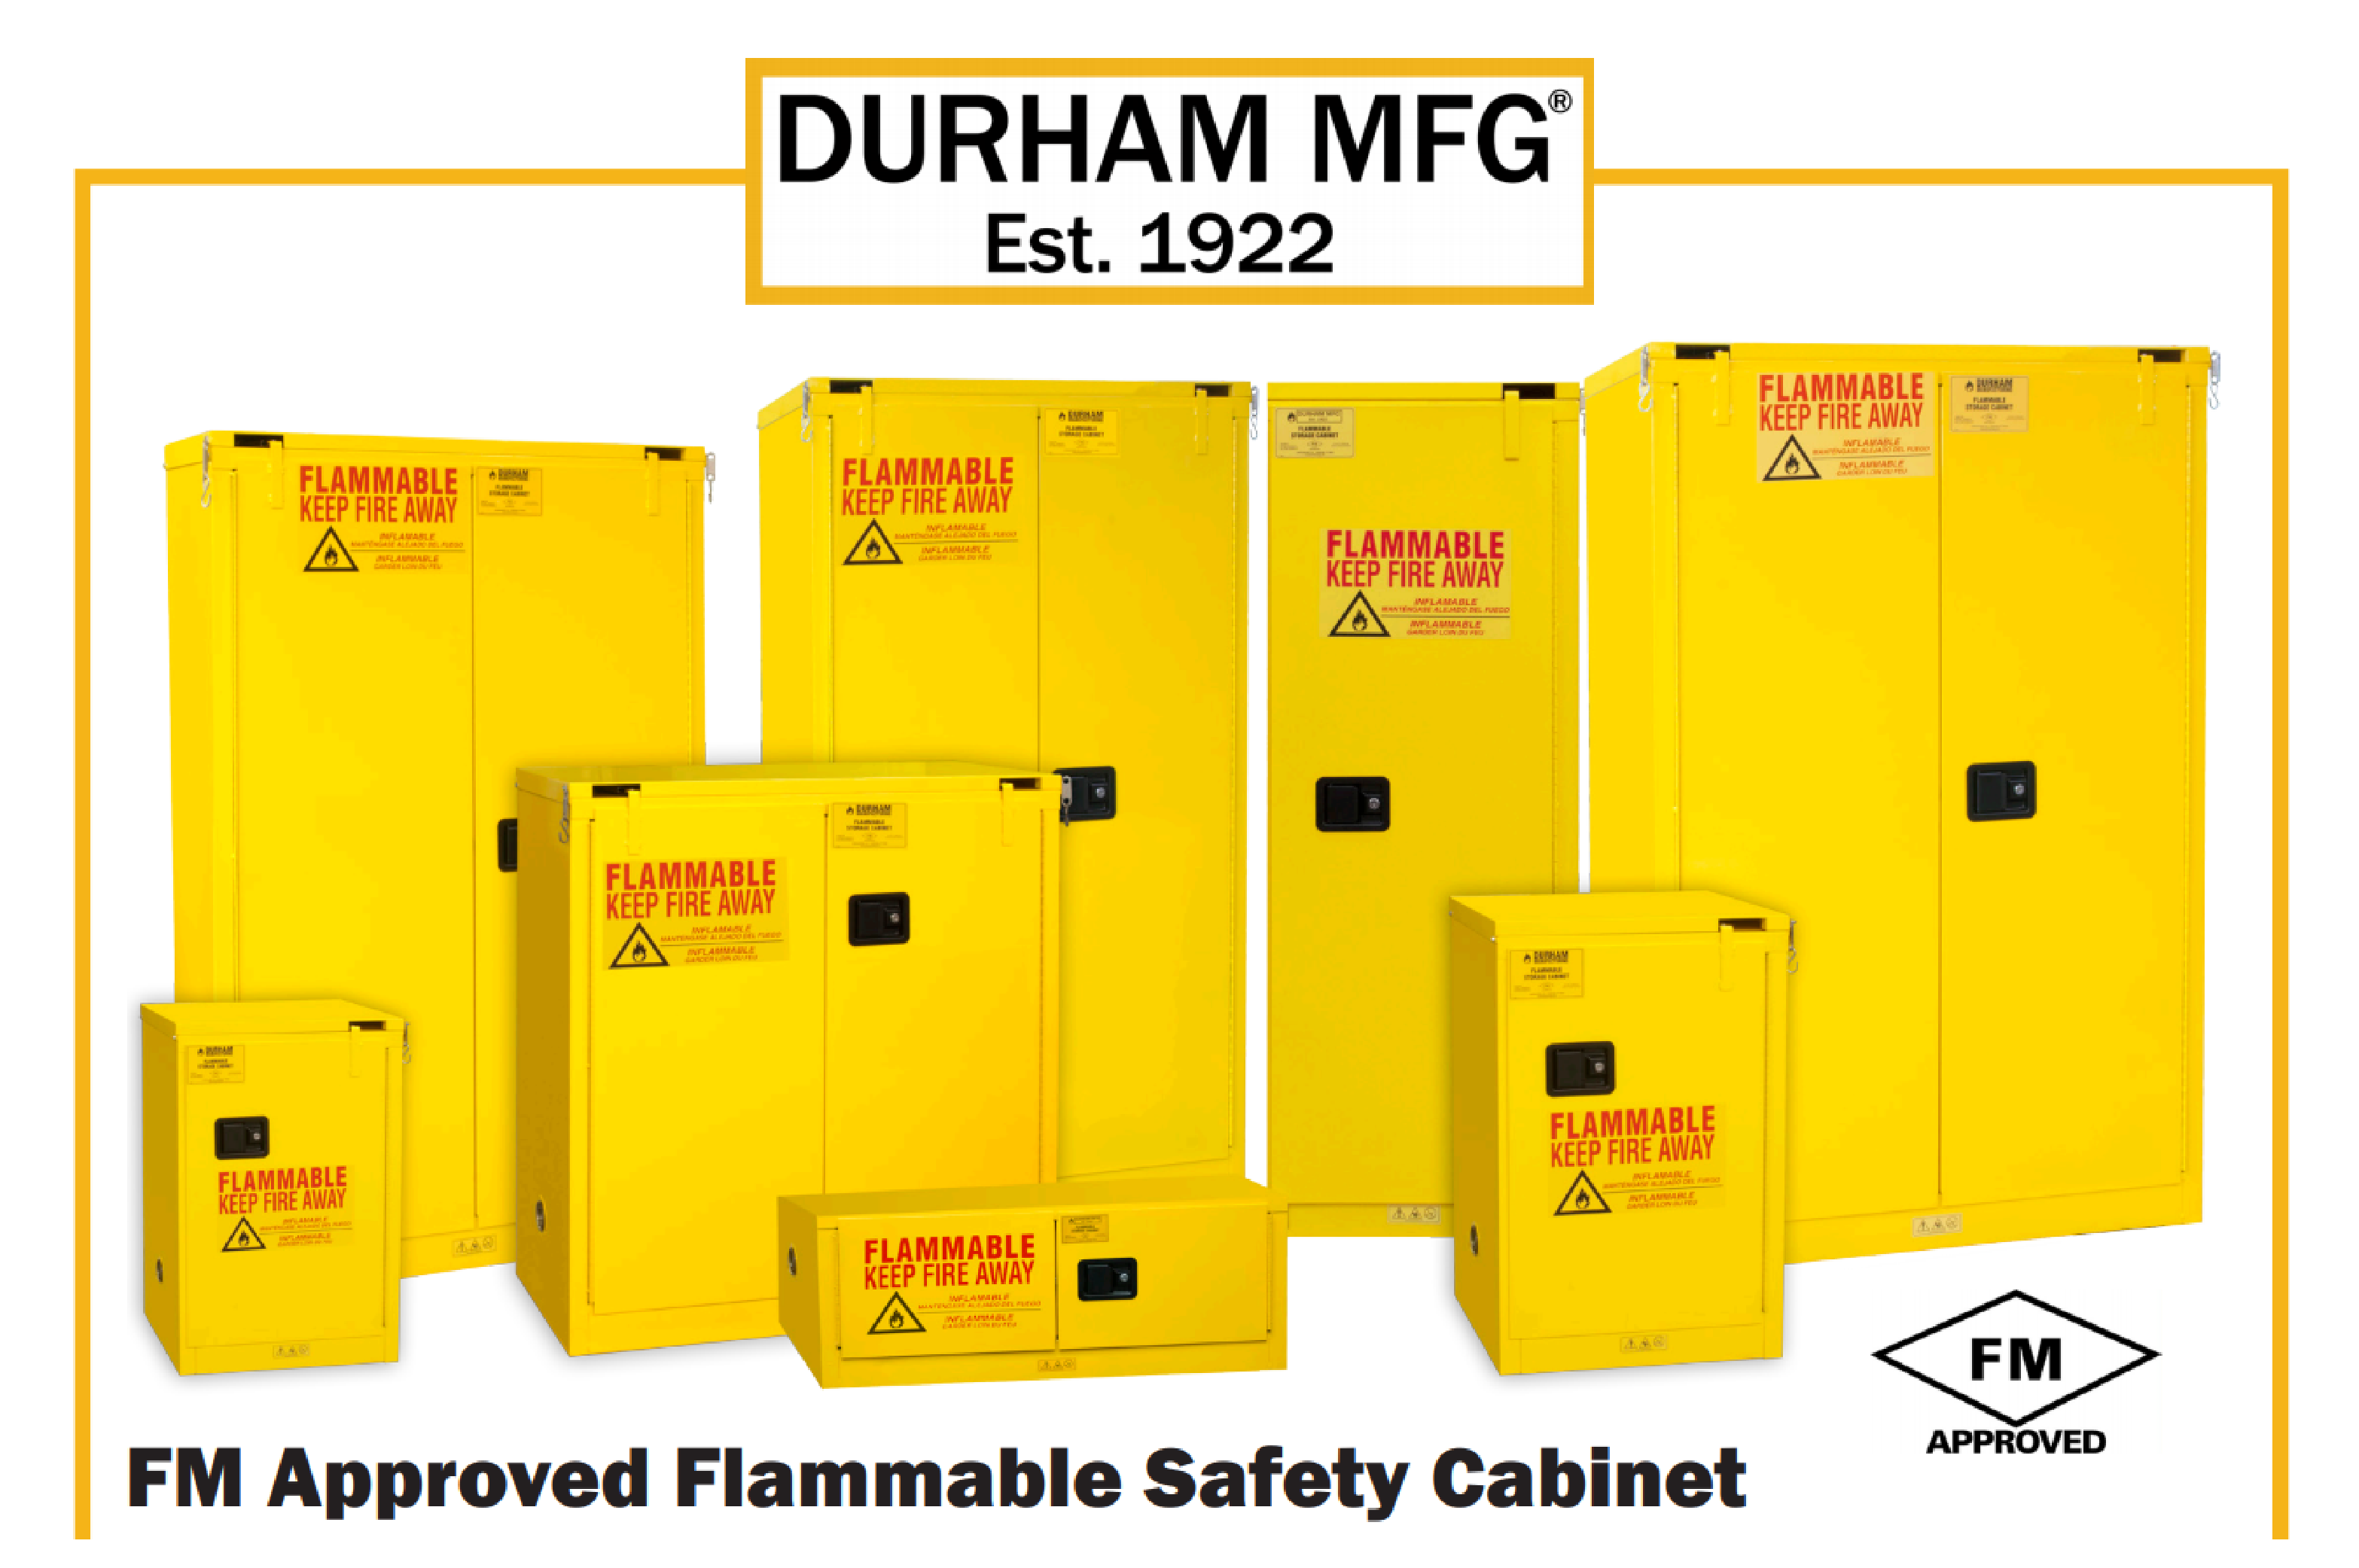 DURHAM MFG® – Flammable Storage Cabinet